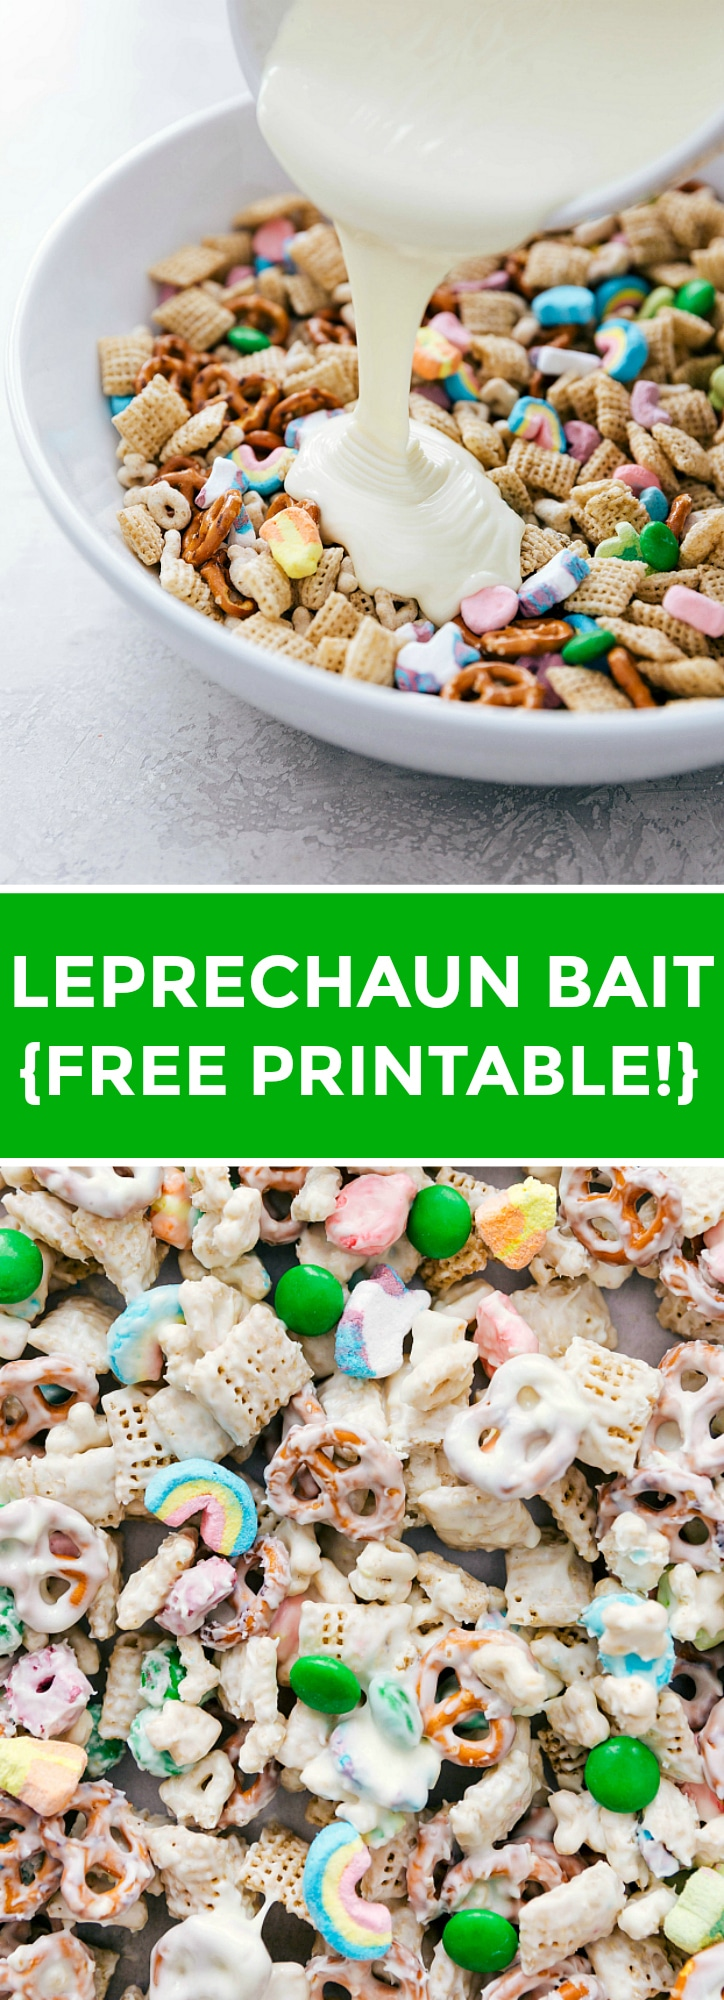 This easy, no baking required Leprechaun Bait makes the perfect treat for St. Patrick's Day. This addictive snack mix is packed with Lucky Charms, chex cereal, pretzels, chocolate-covered candies, and coated in melted white chocolate. PLUS FREE PRINTABLE! via chelseasmessyapron.com #st #patrick #day #patricks #dessert #treat #quick #easy #free #printable